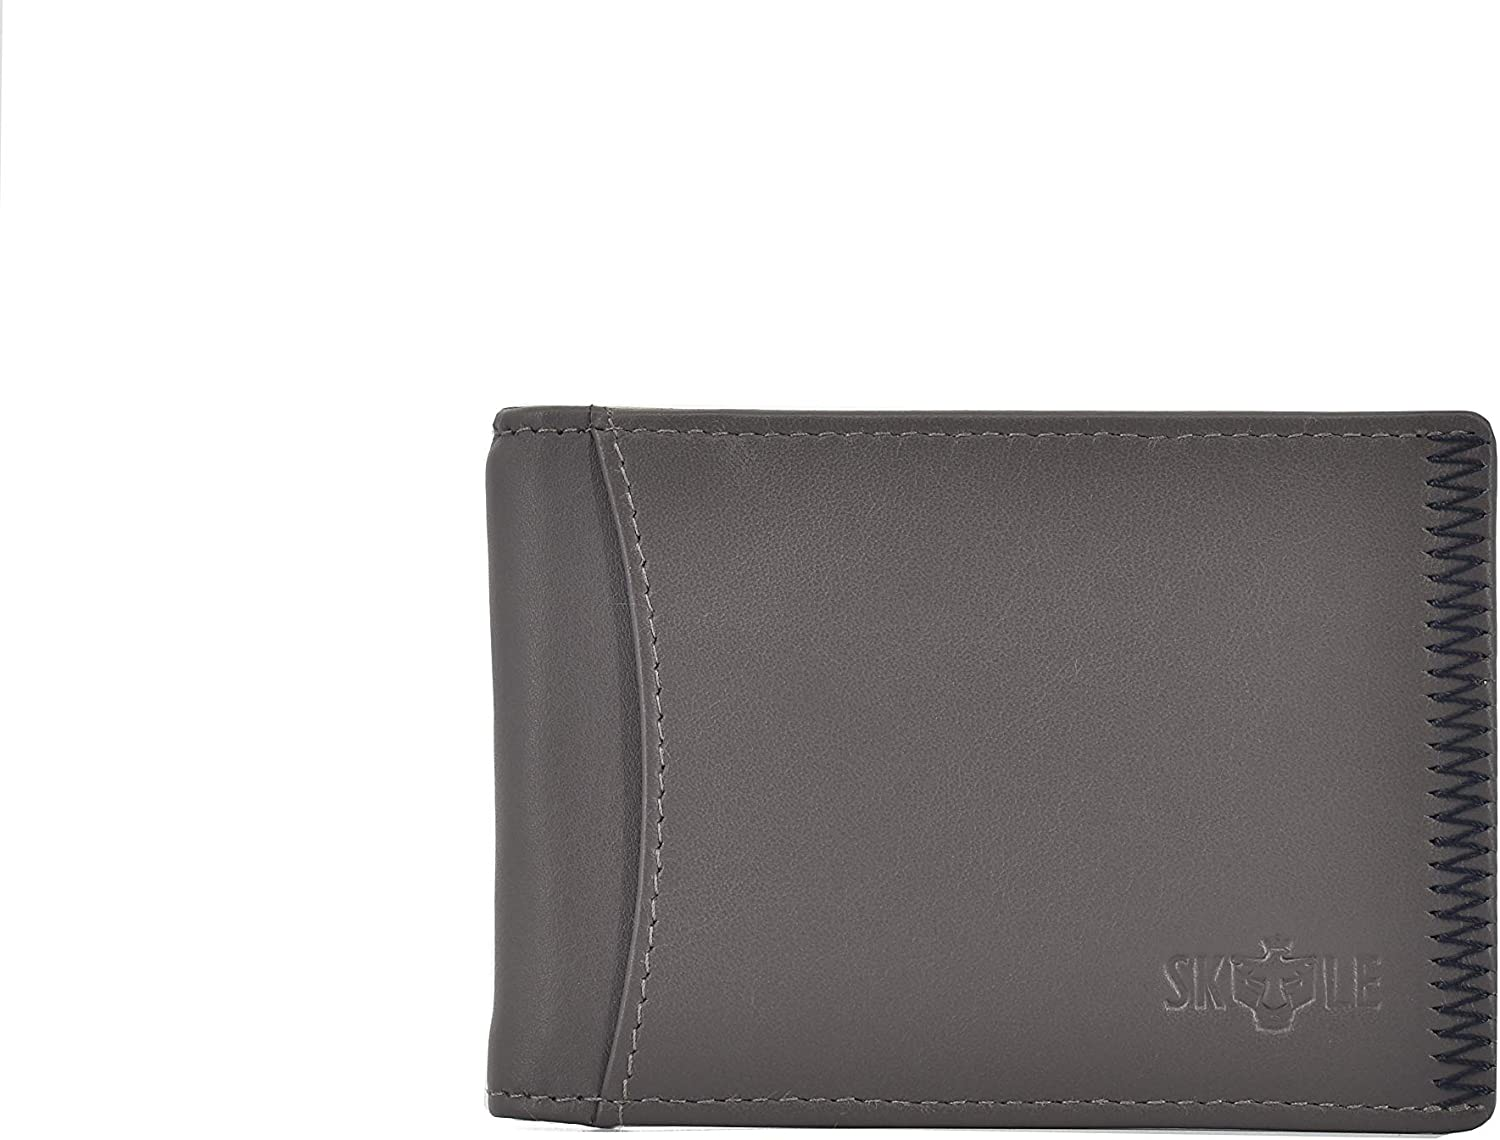 SKYLE Mens Functional Bifold Wallet With Money Clip & RFID